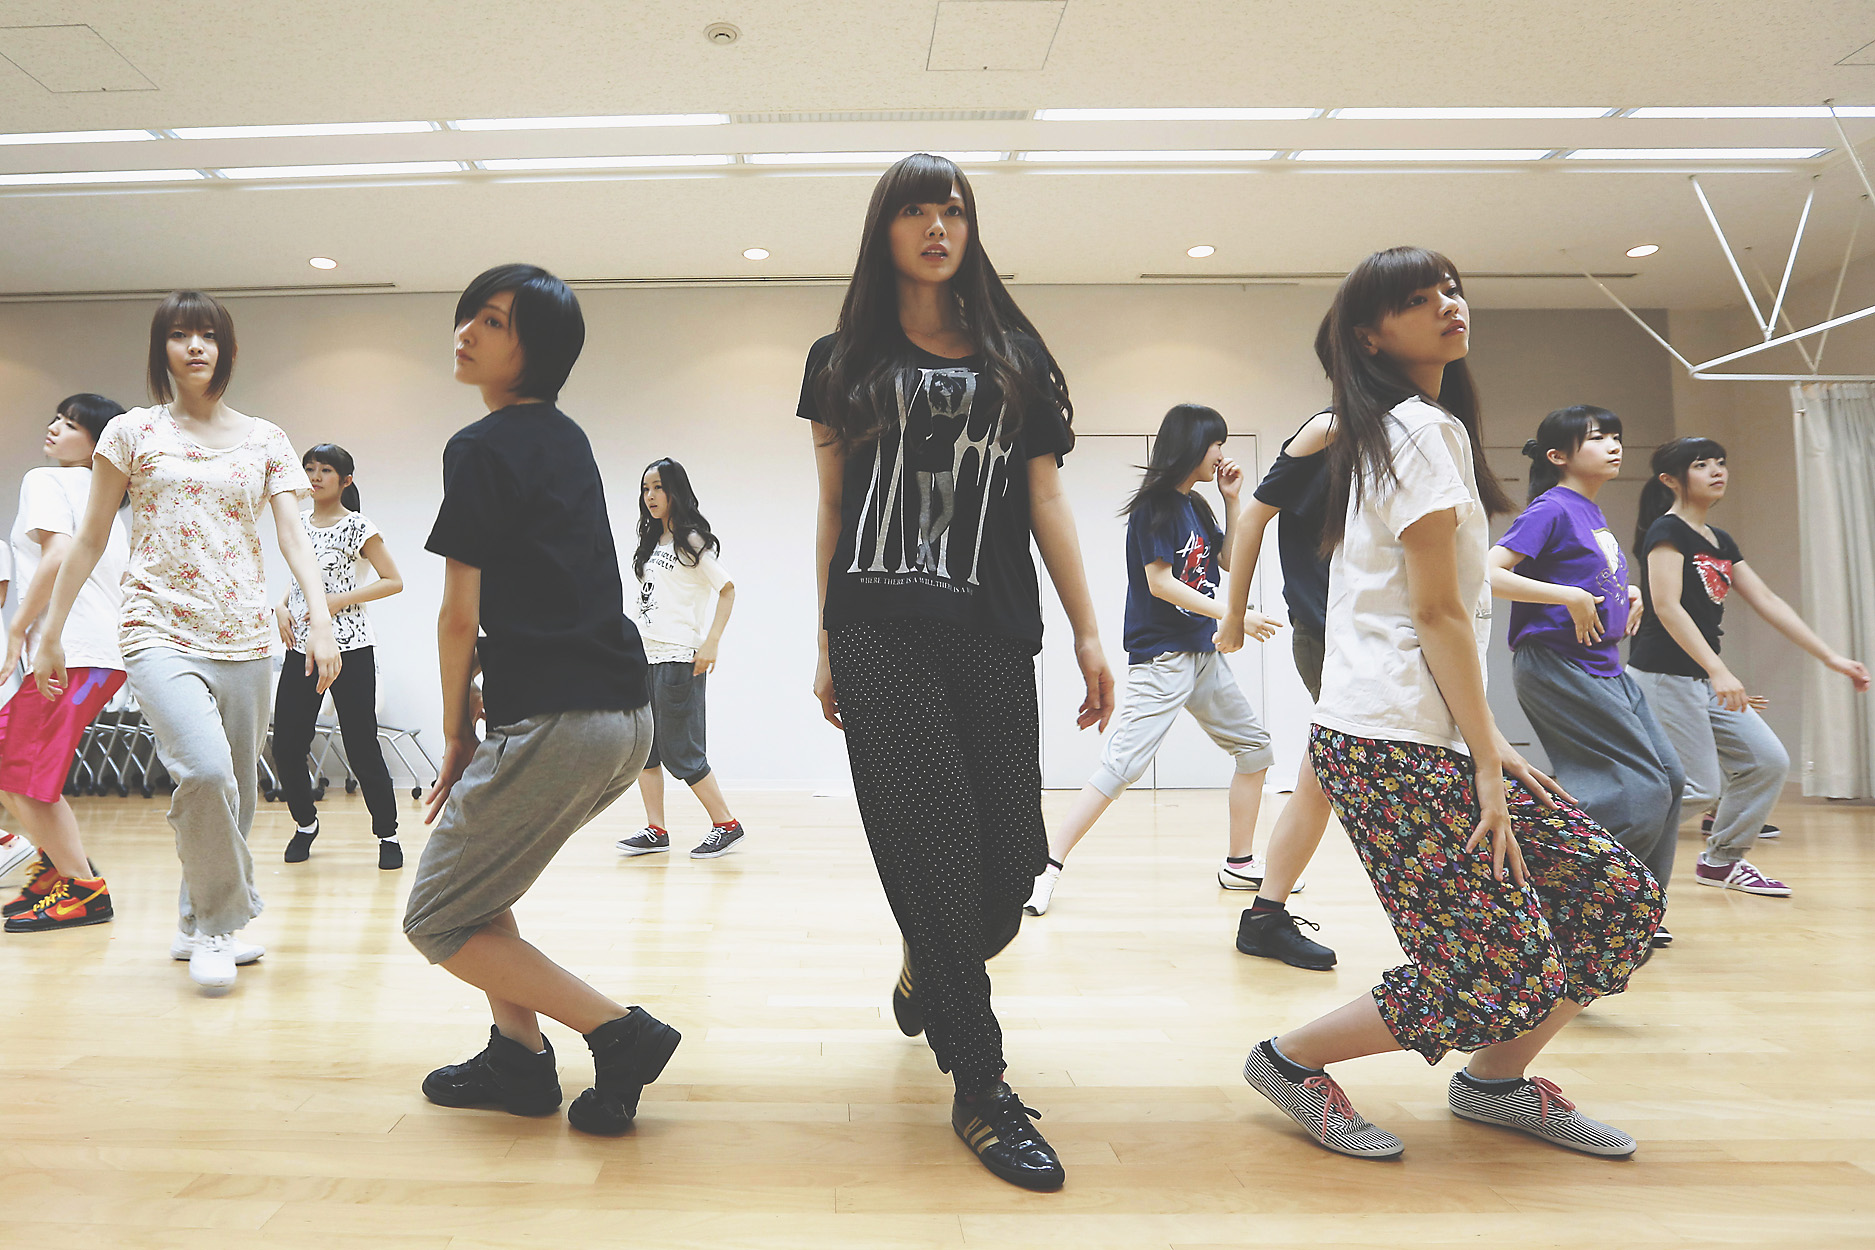 Seeking a toehold: Members of Sony Corp.'s girl group Nogizaka 46, (from front left) Sayuri Matsumura, Rina Ikoma, Mai Shiraishi and Nanase Nishino, practice dance moves for a new song with colleagues at Sony Music Entertainment (Japan) Inc. headquarters in Tokyo on June 28. | BLOOMBERG